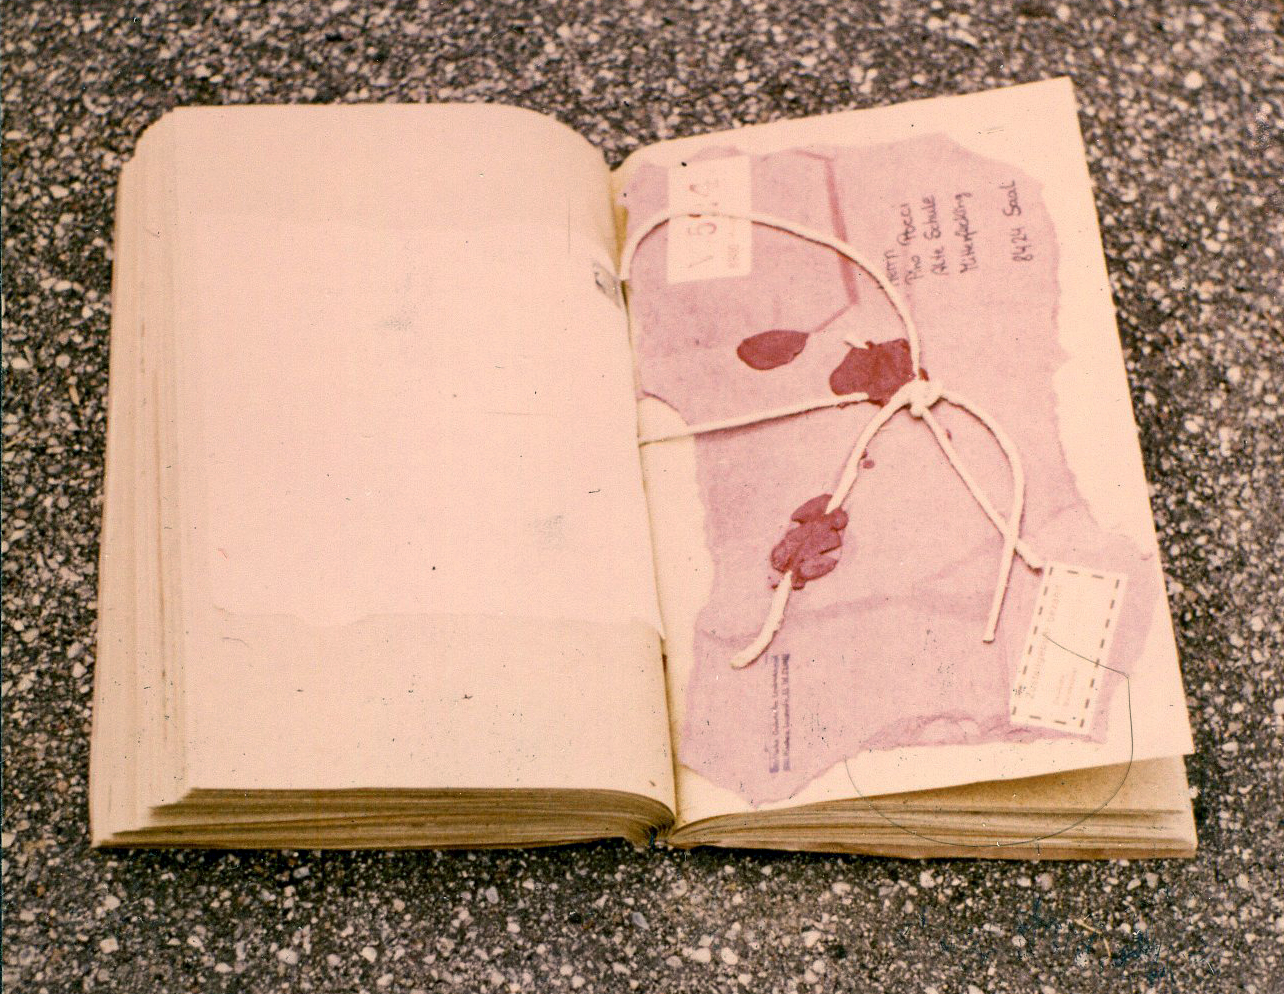 Modified found book - opened – with mixed media collage on page